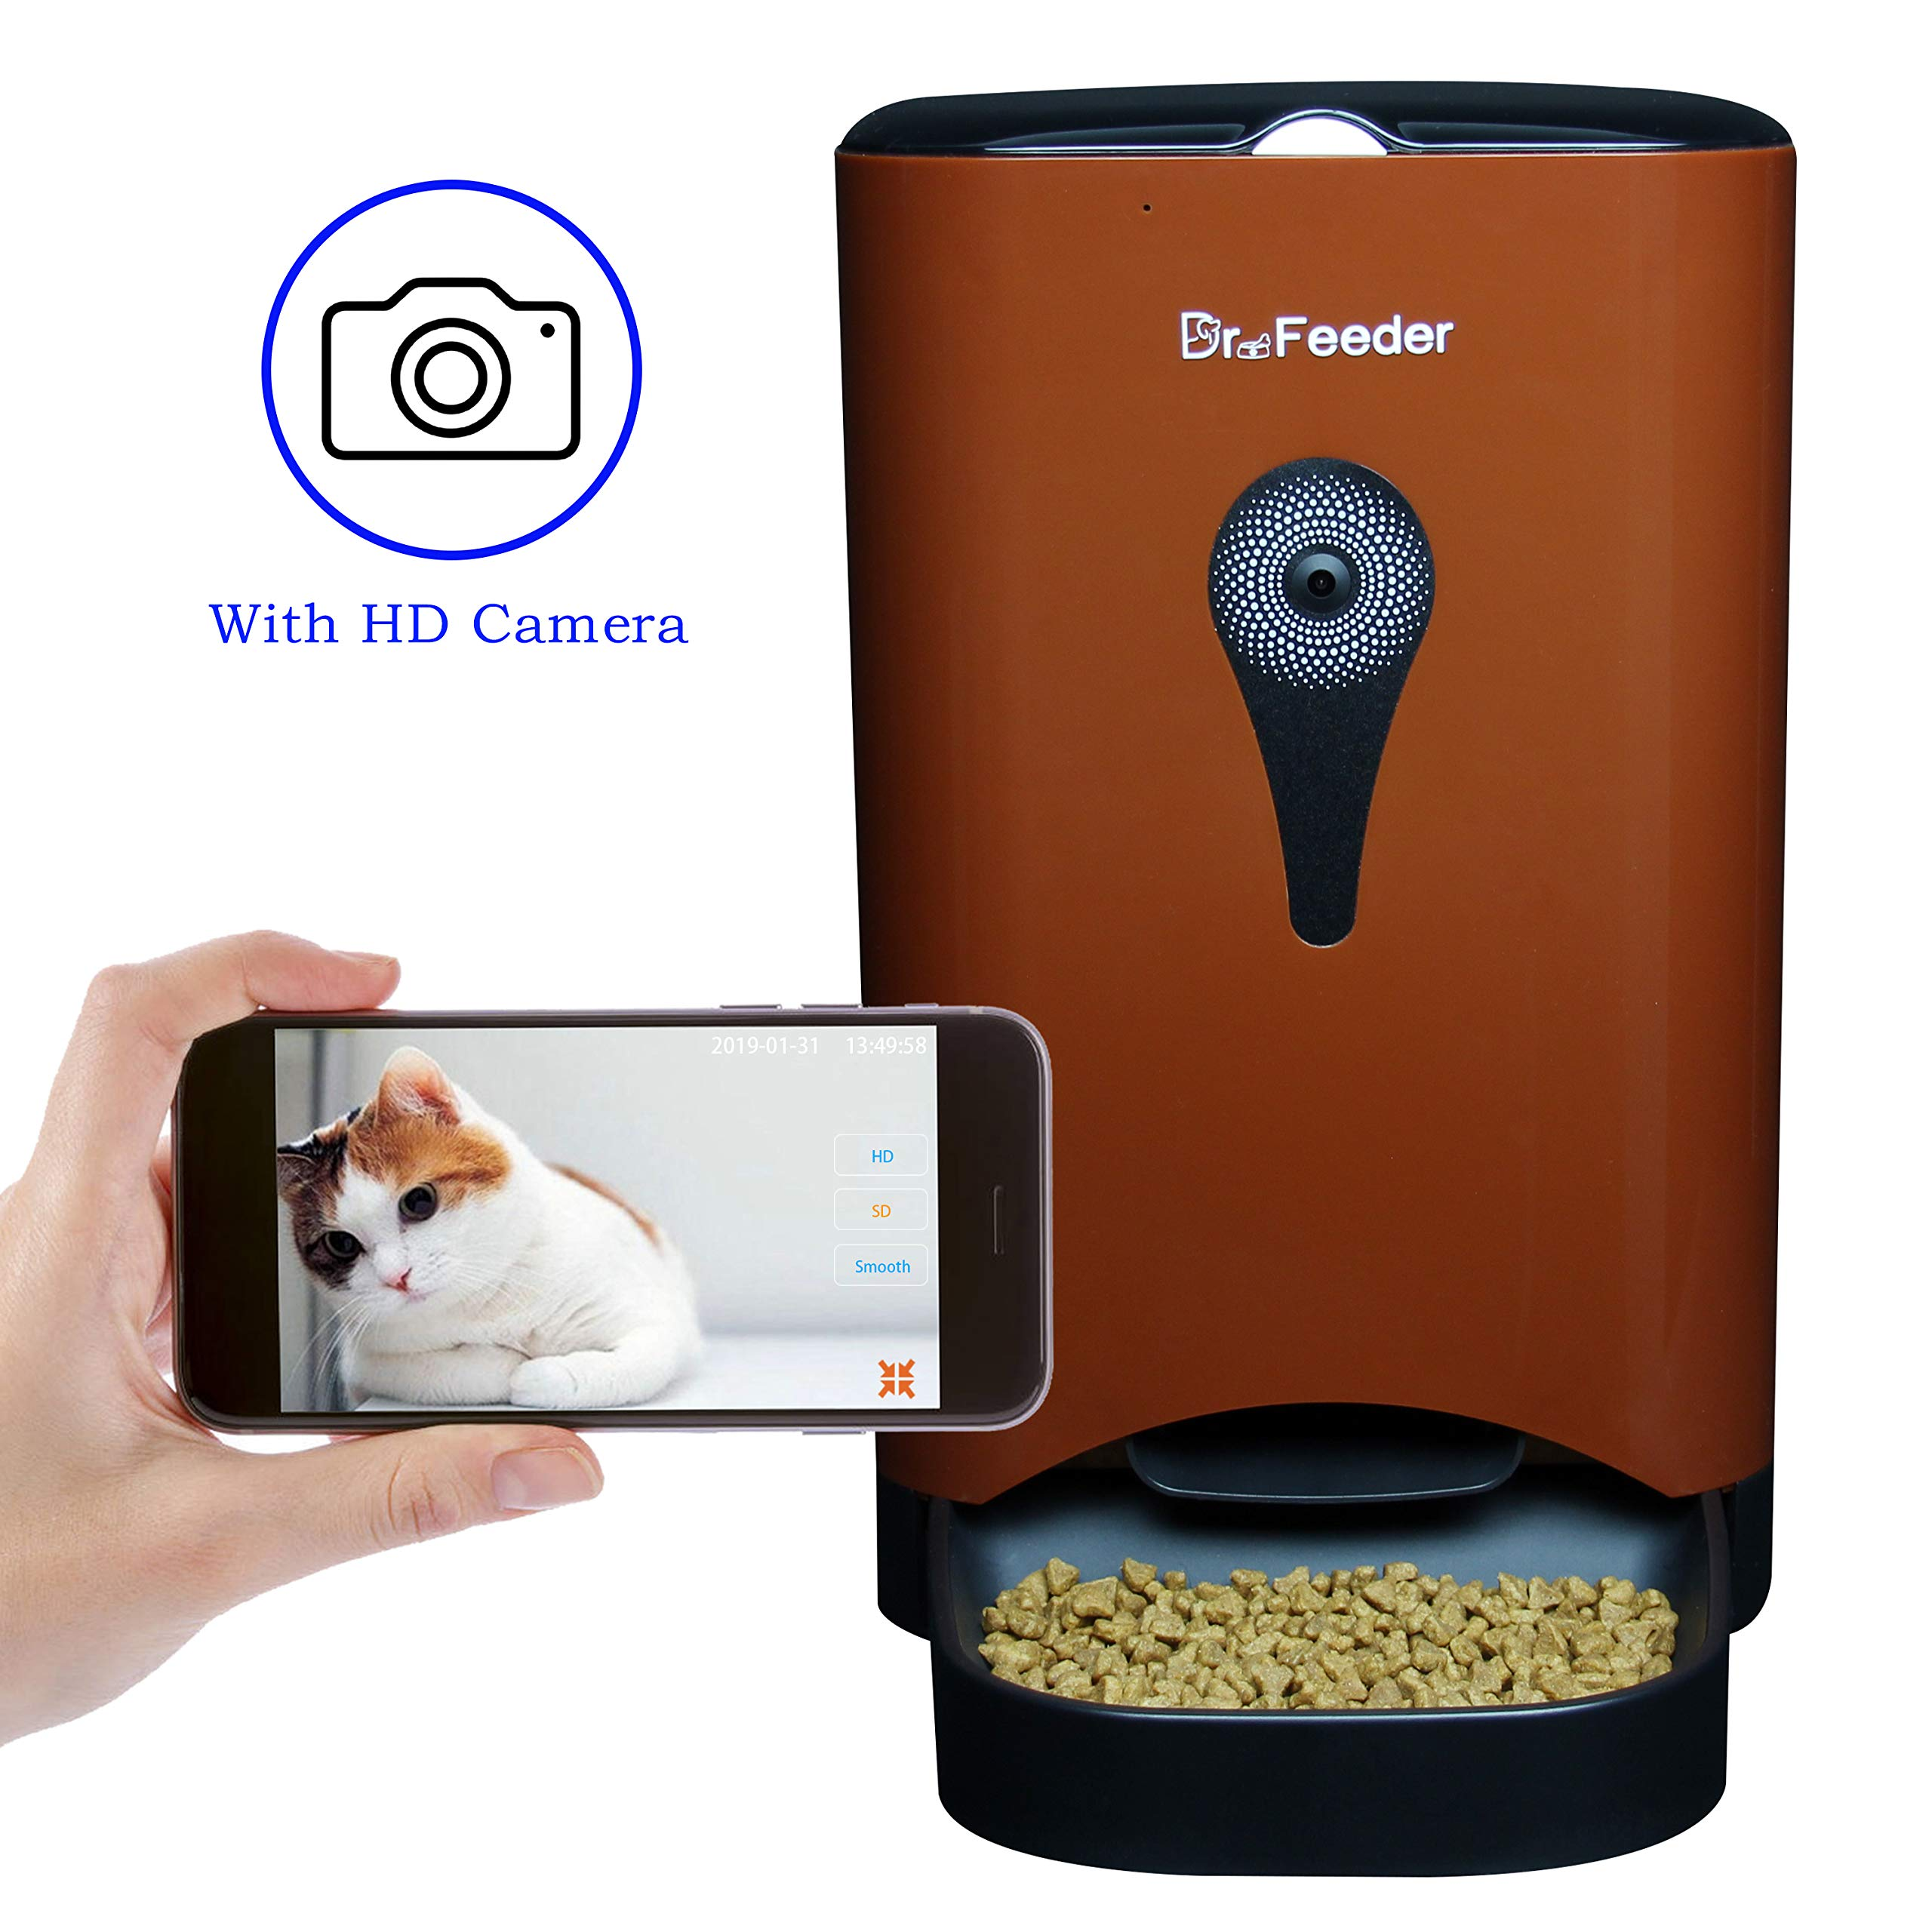 4.5L Smart Feeder, Automatic Pet Feeder for Cats and Dogs, HD Camera for Video and Audio Communication, APP Controlled Food Dispenser Through Wi-Fi, Coffee